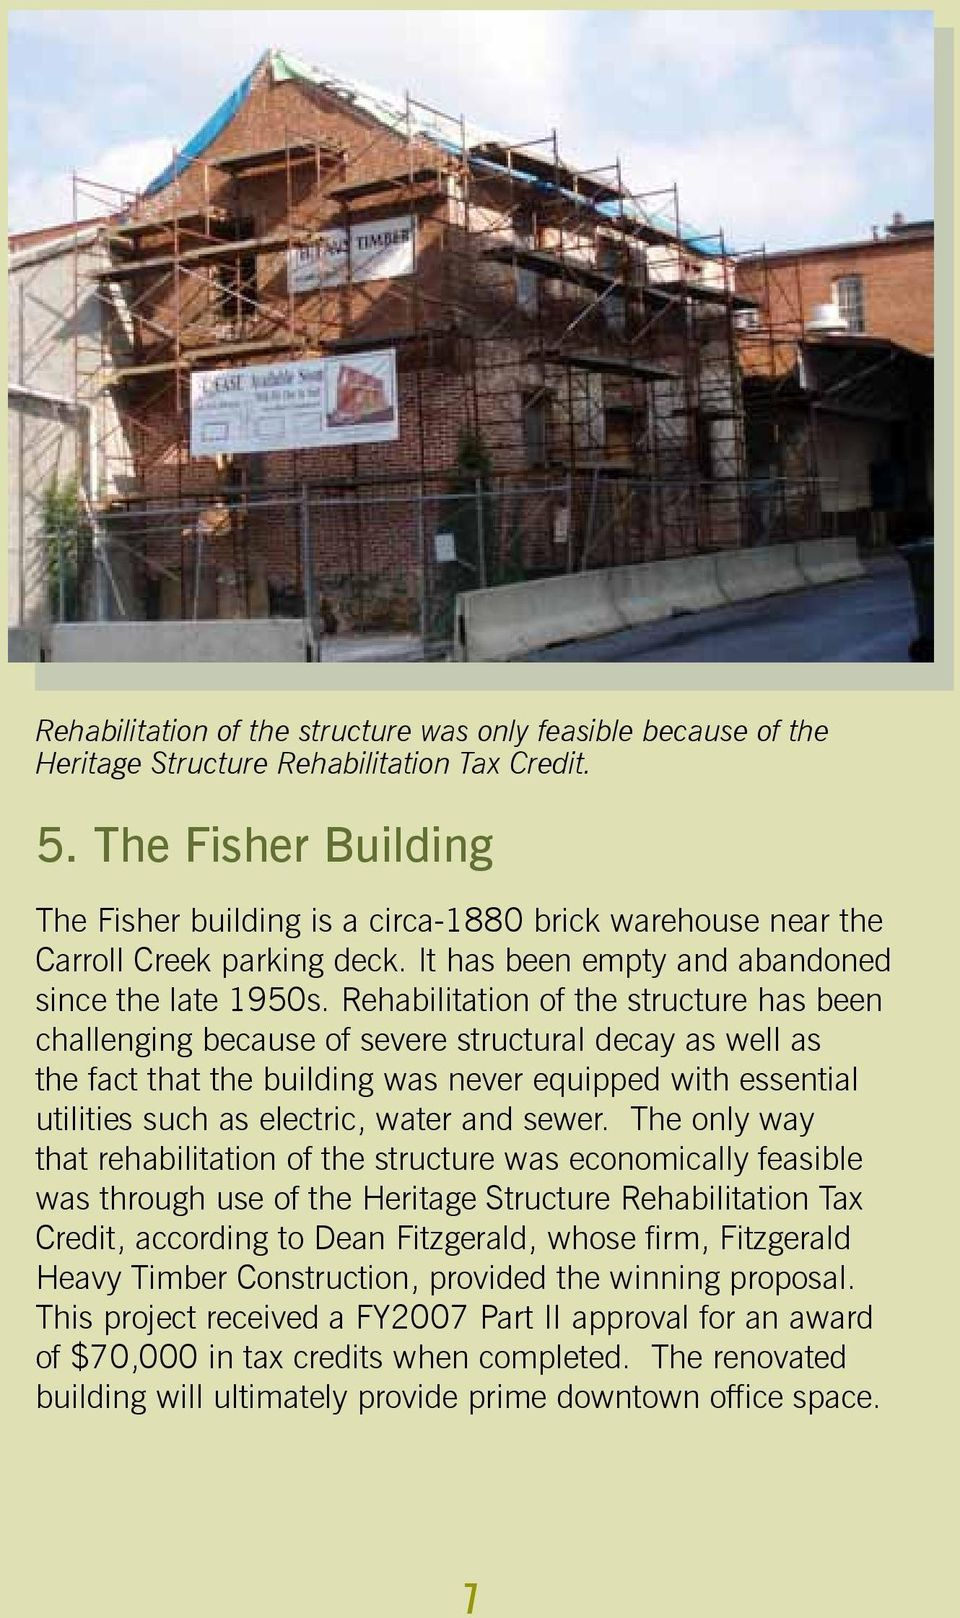 Rehabilitation of the structure has been challenging because of severe structural decay as well as the fact that the building was never equipped with essential utilities such as electric, water and